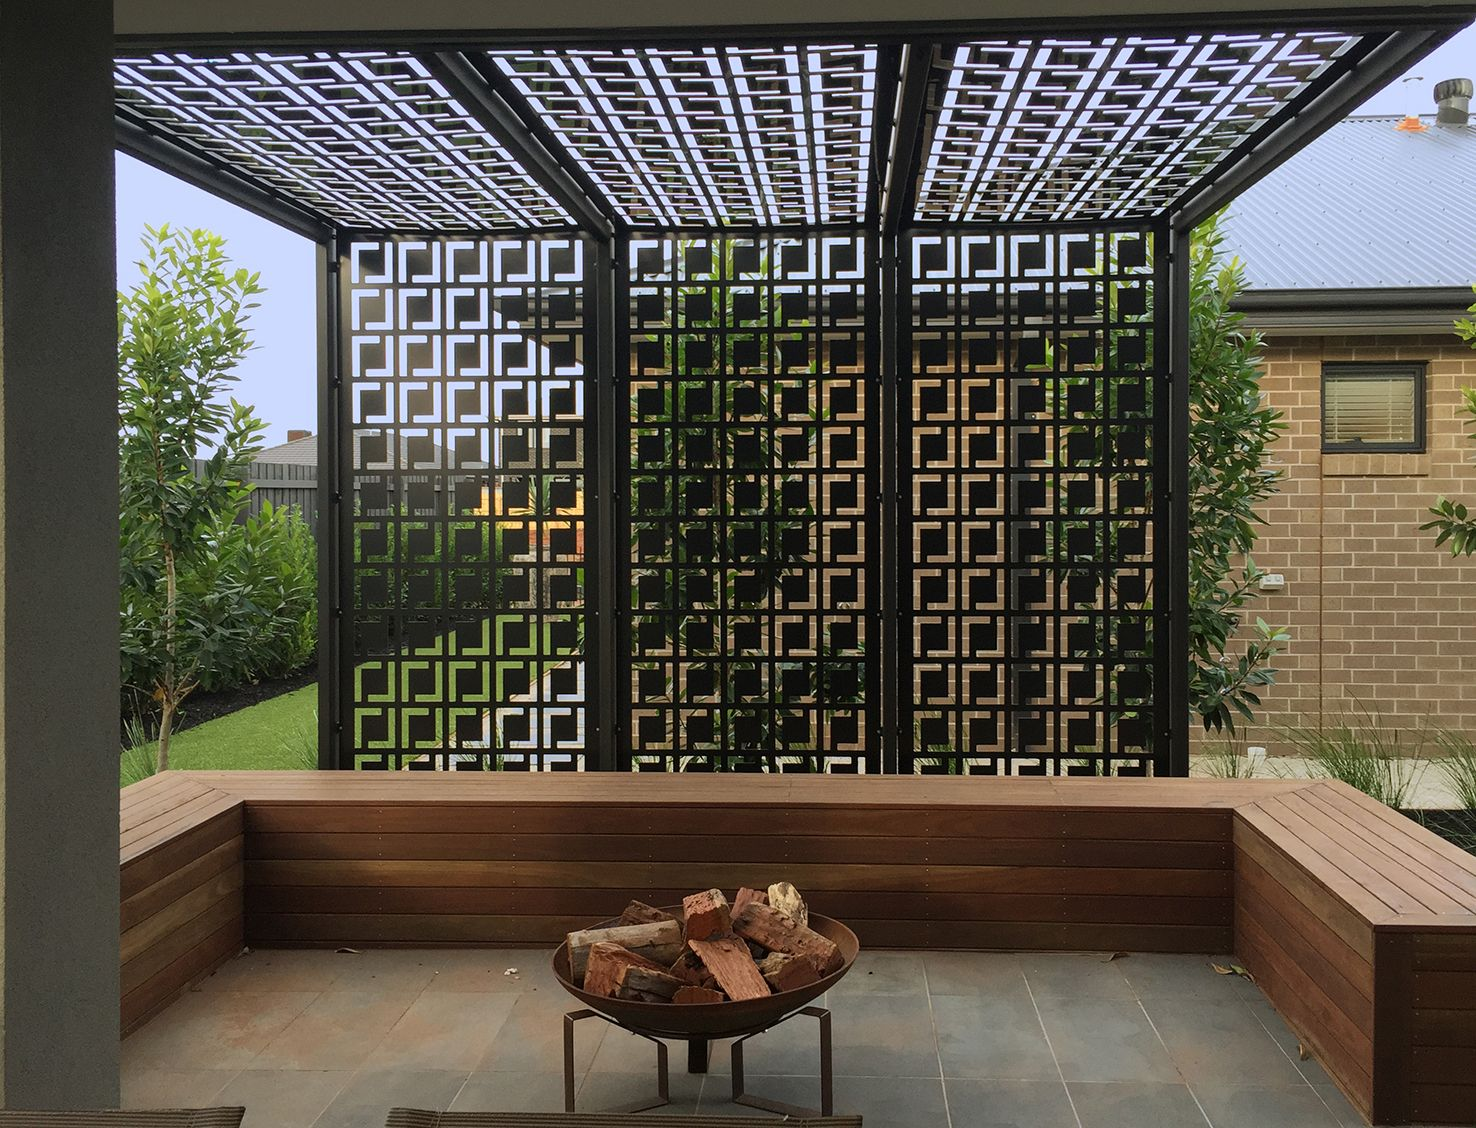 Pergola privacy screen made using decorative screens for Backyard screening ideas